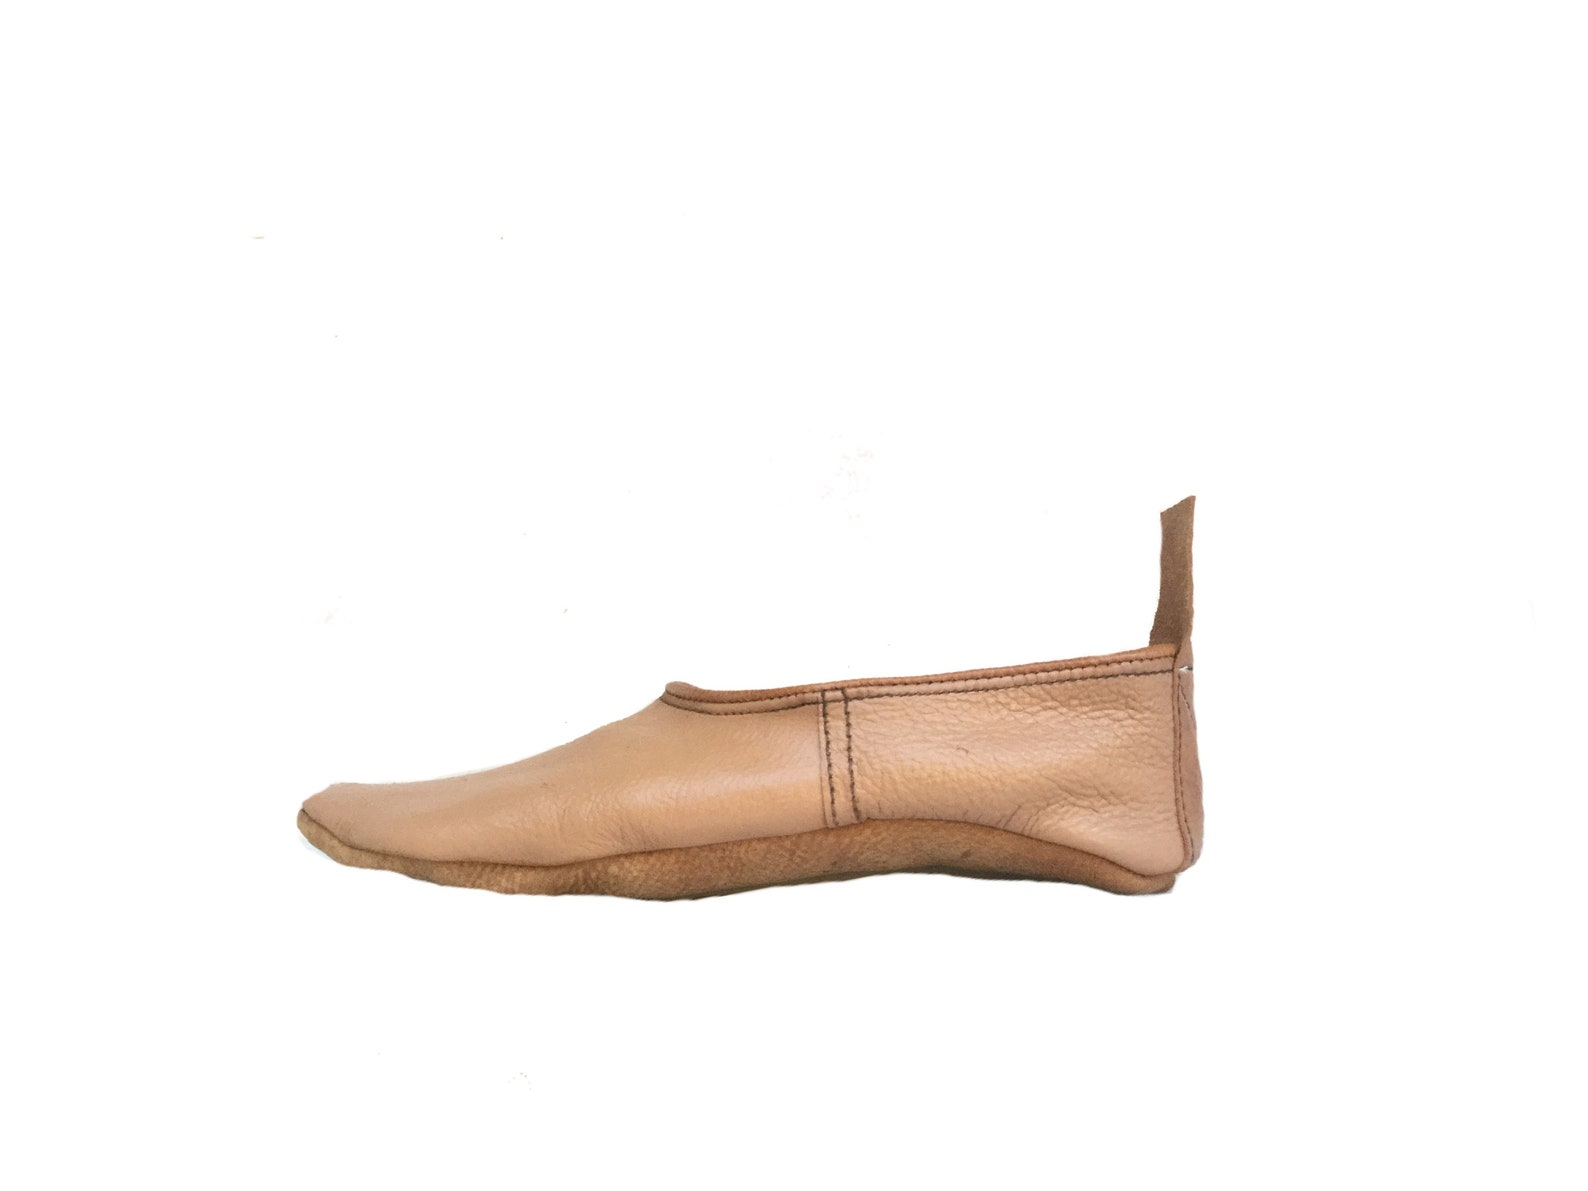 tan leather flats, leather slippers, house shoes, gift for her,leather travel shoes, tabi socks ,ballet flats,loafers,